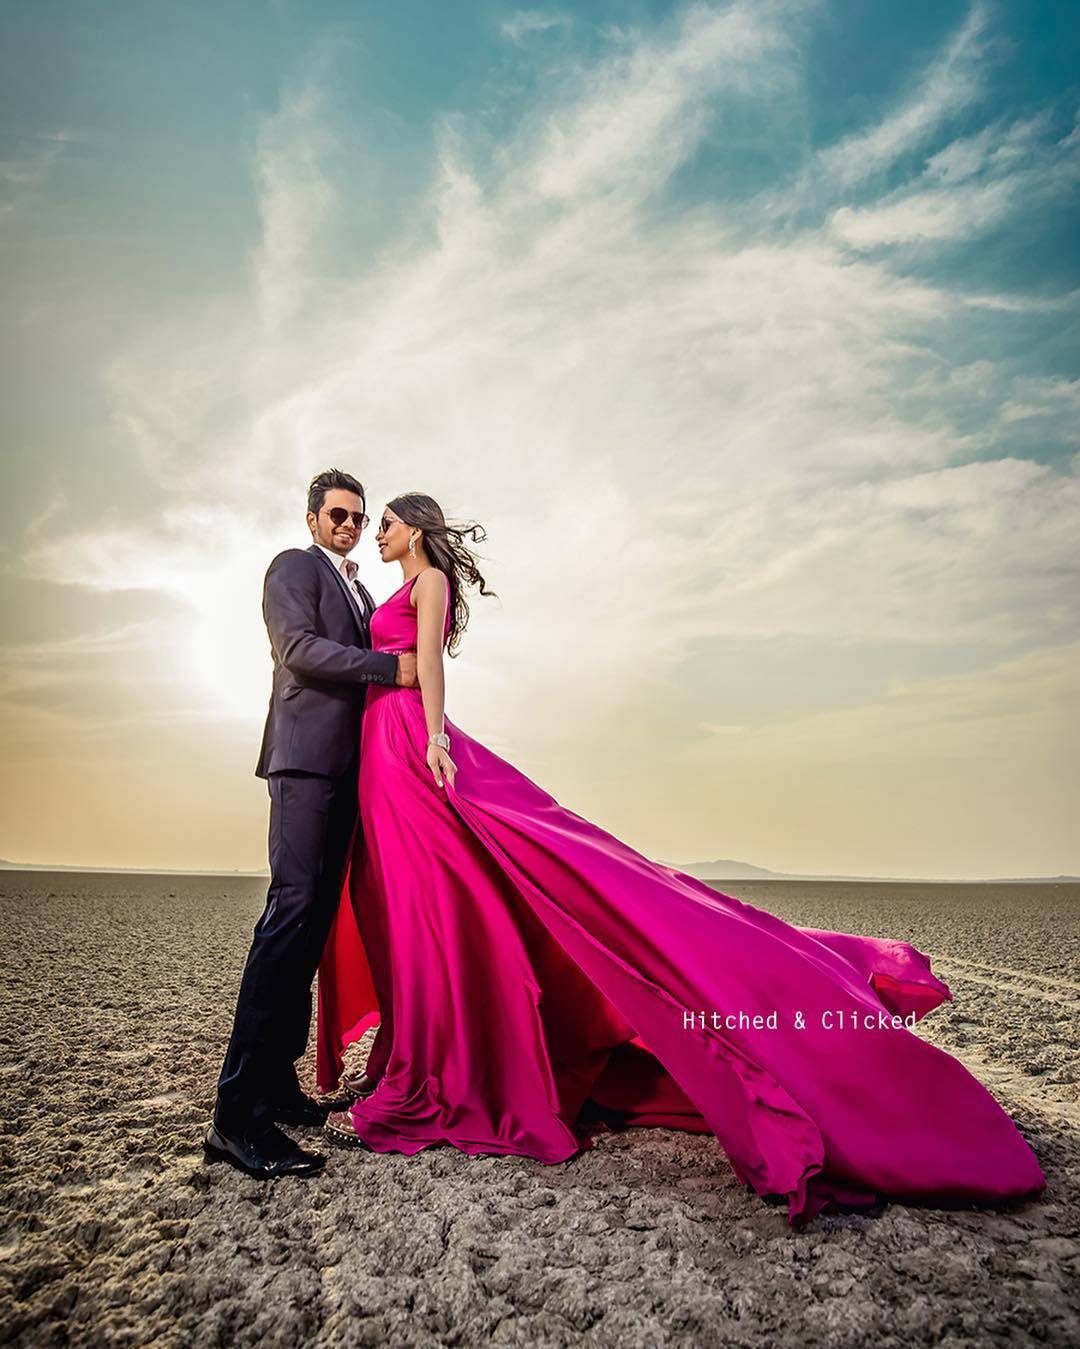 What To Wear To A Pre-wedding Shoot To Add Visual Drama?